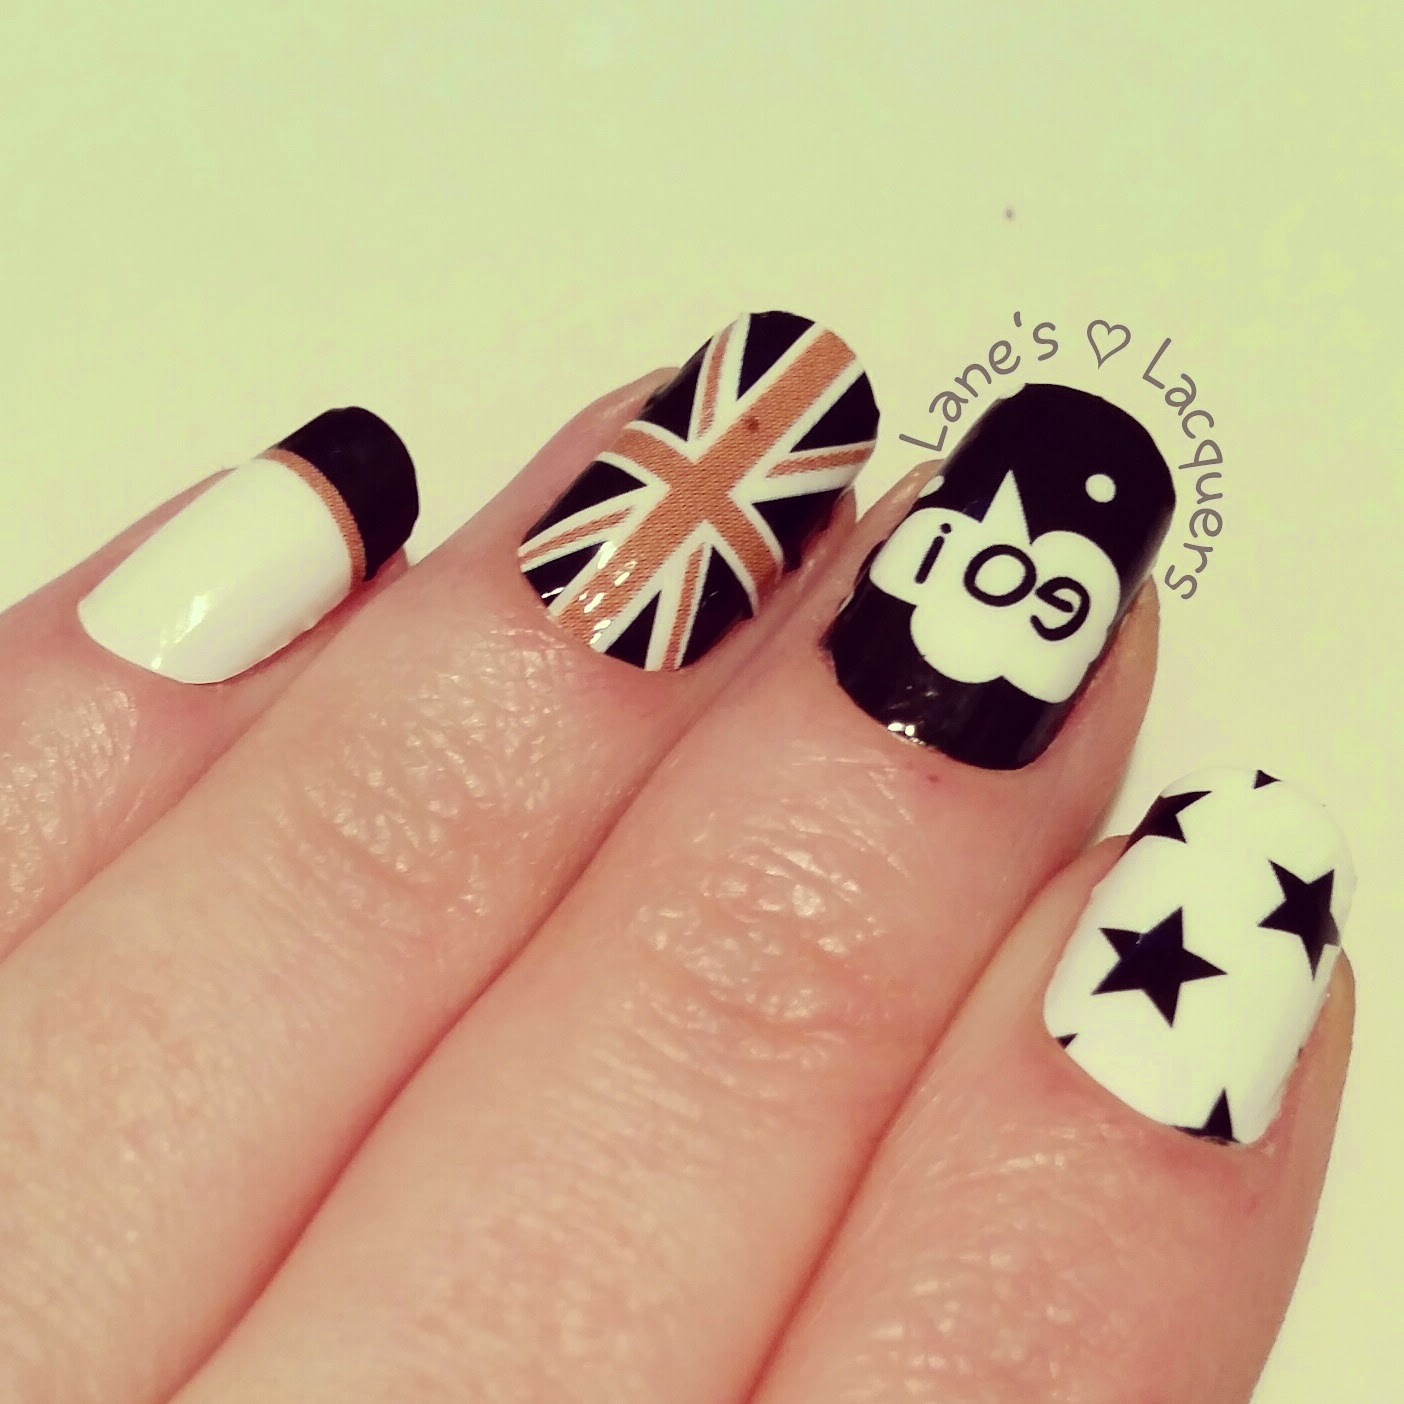 omg-nail-strips-monochrome-british-nail-art (2)